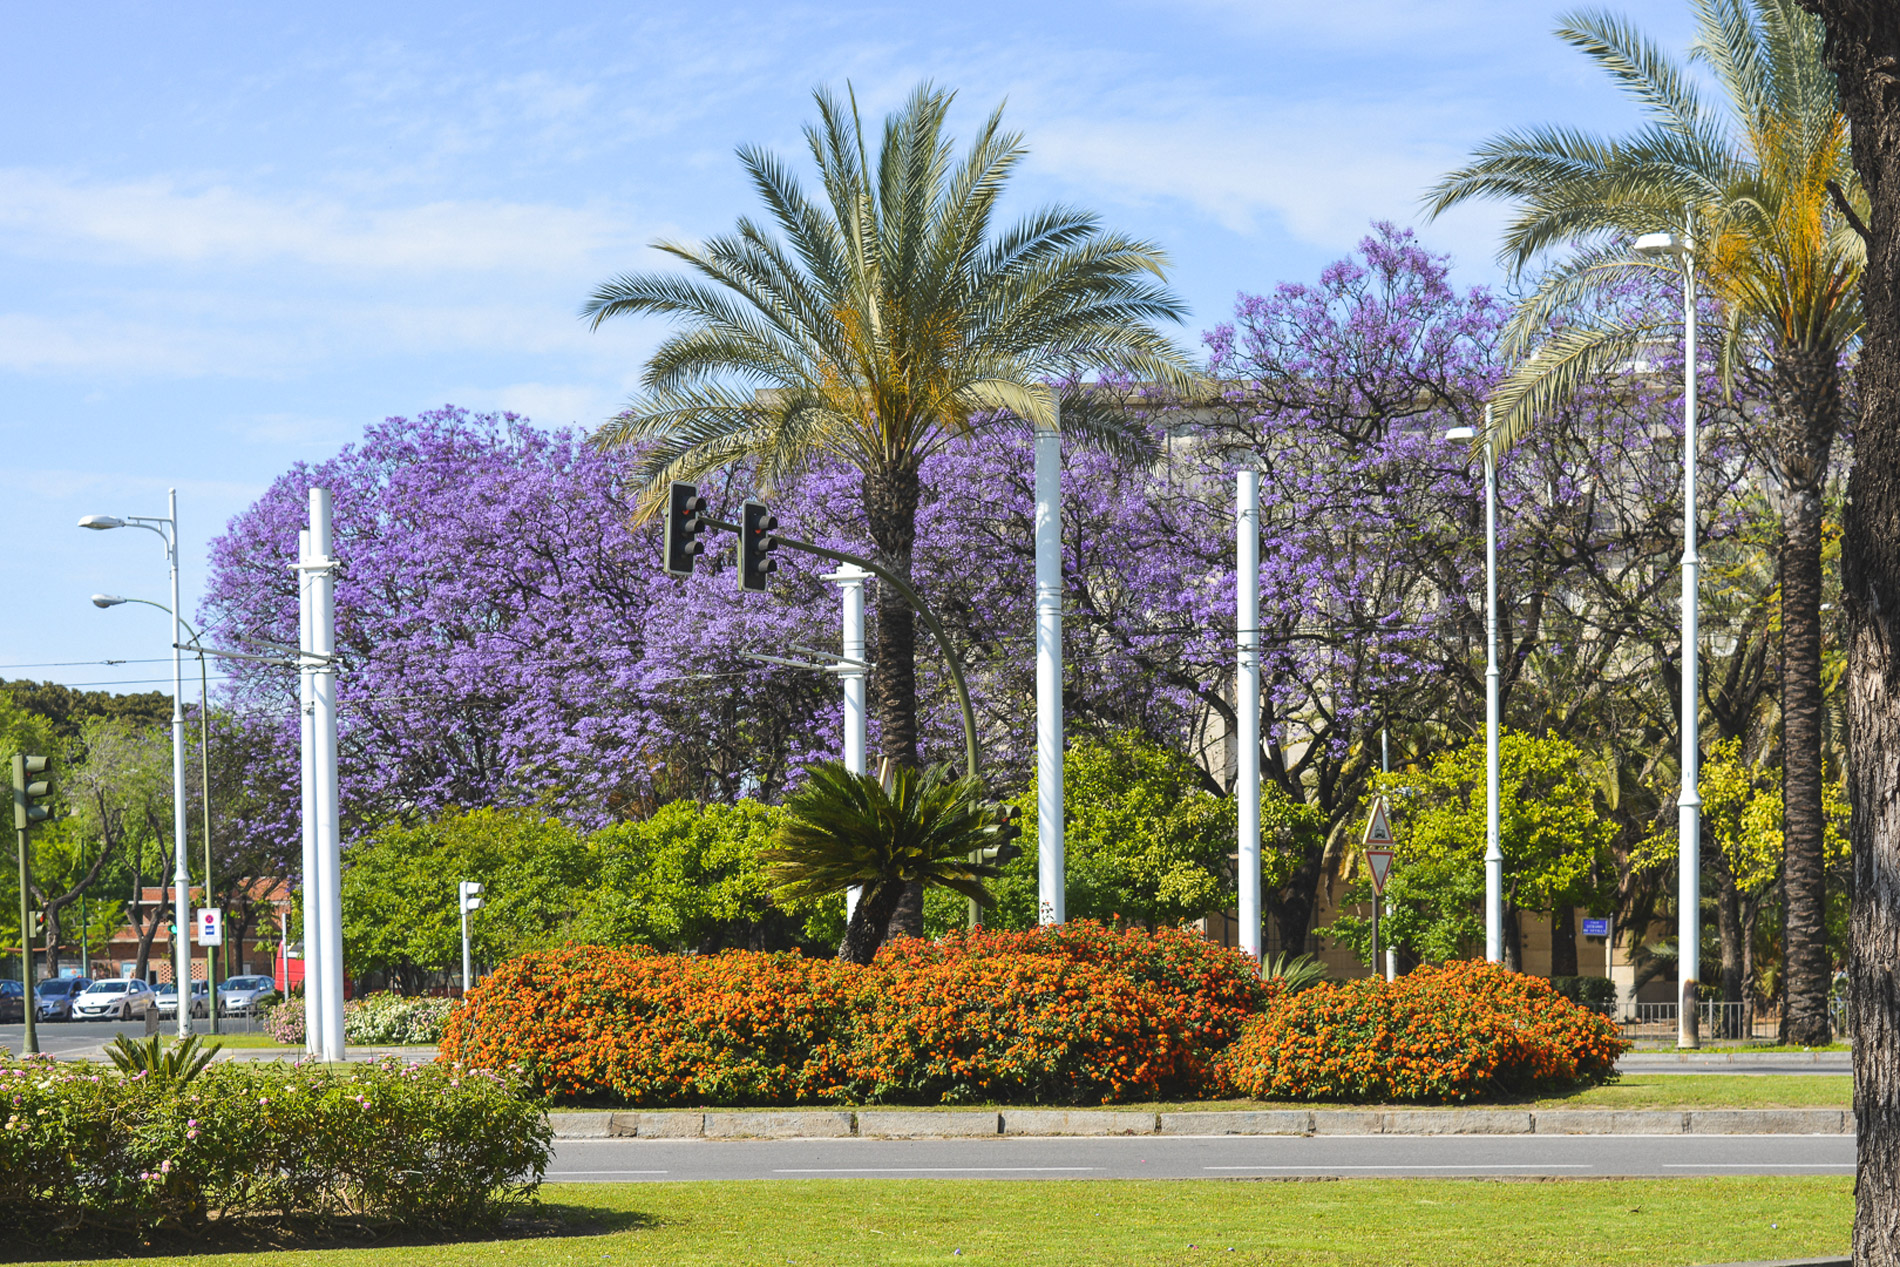 Flowers are one of the main Seville attractions specially in the Spring